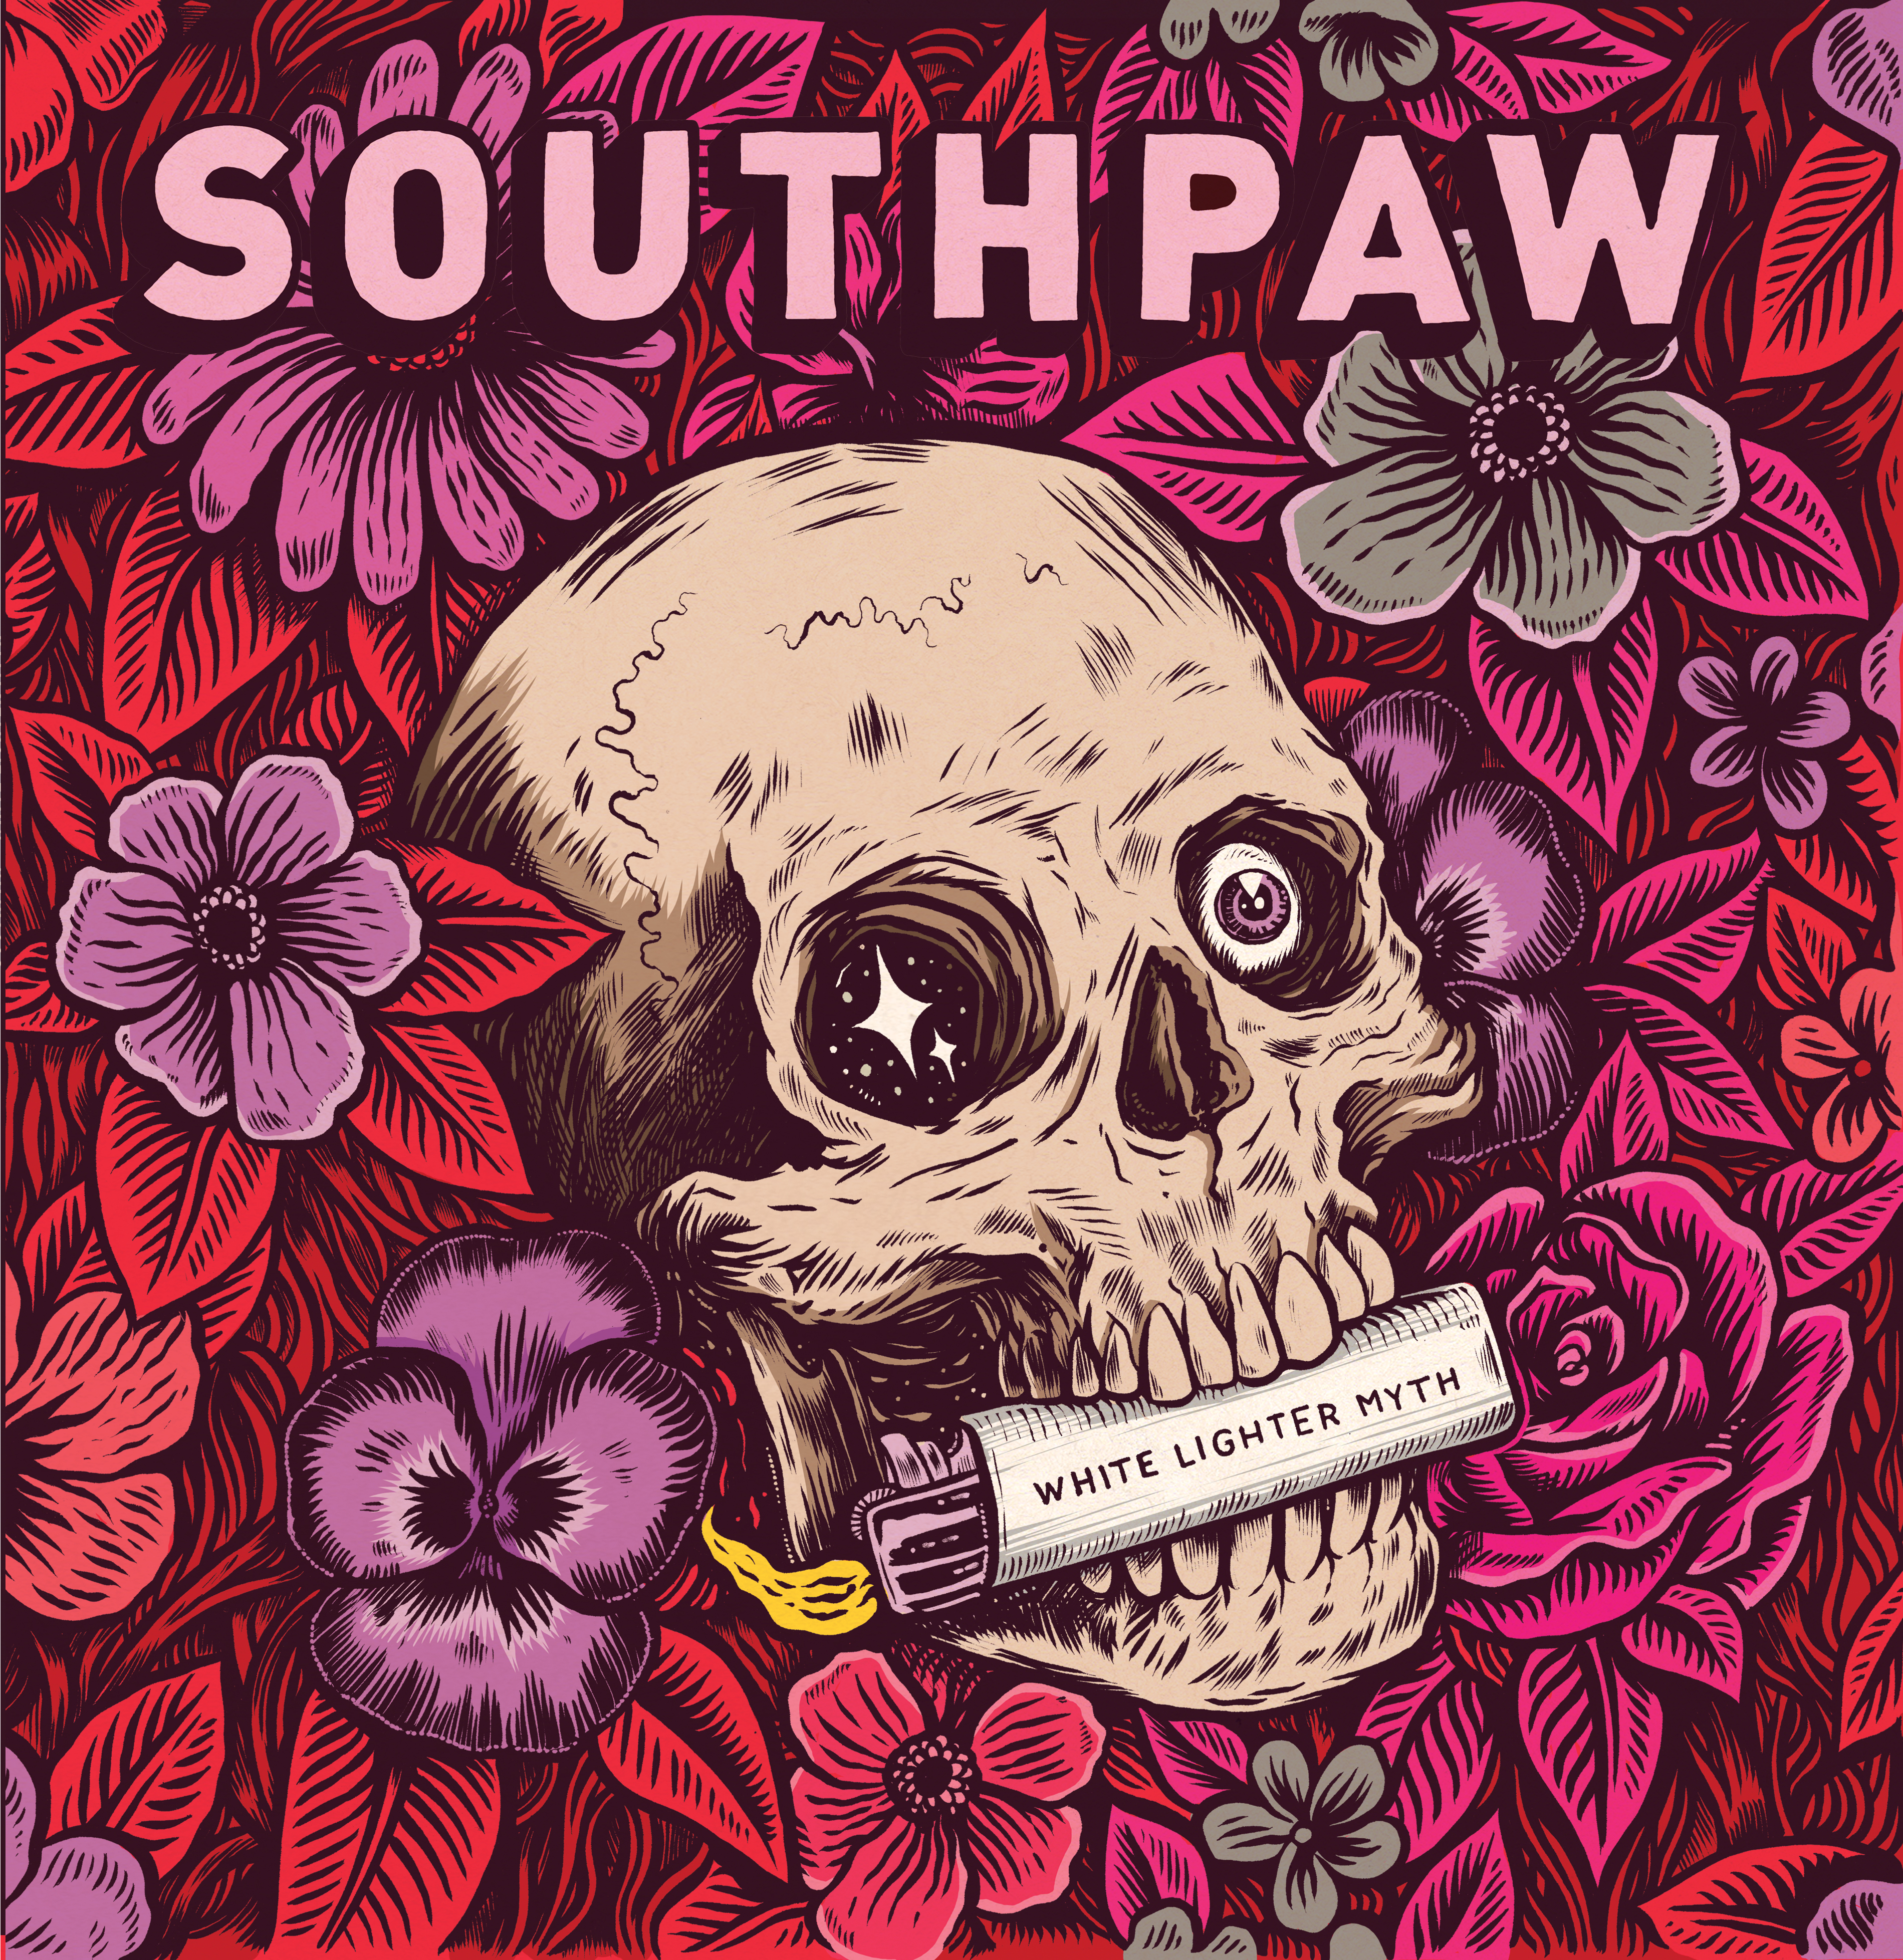 SOUTHPAW - WHITE LIGHTER MYTH (CD & DIGITAL)